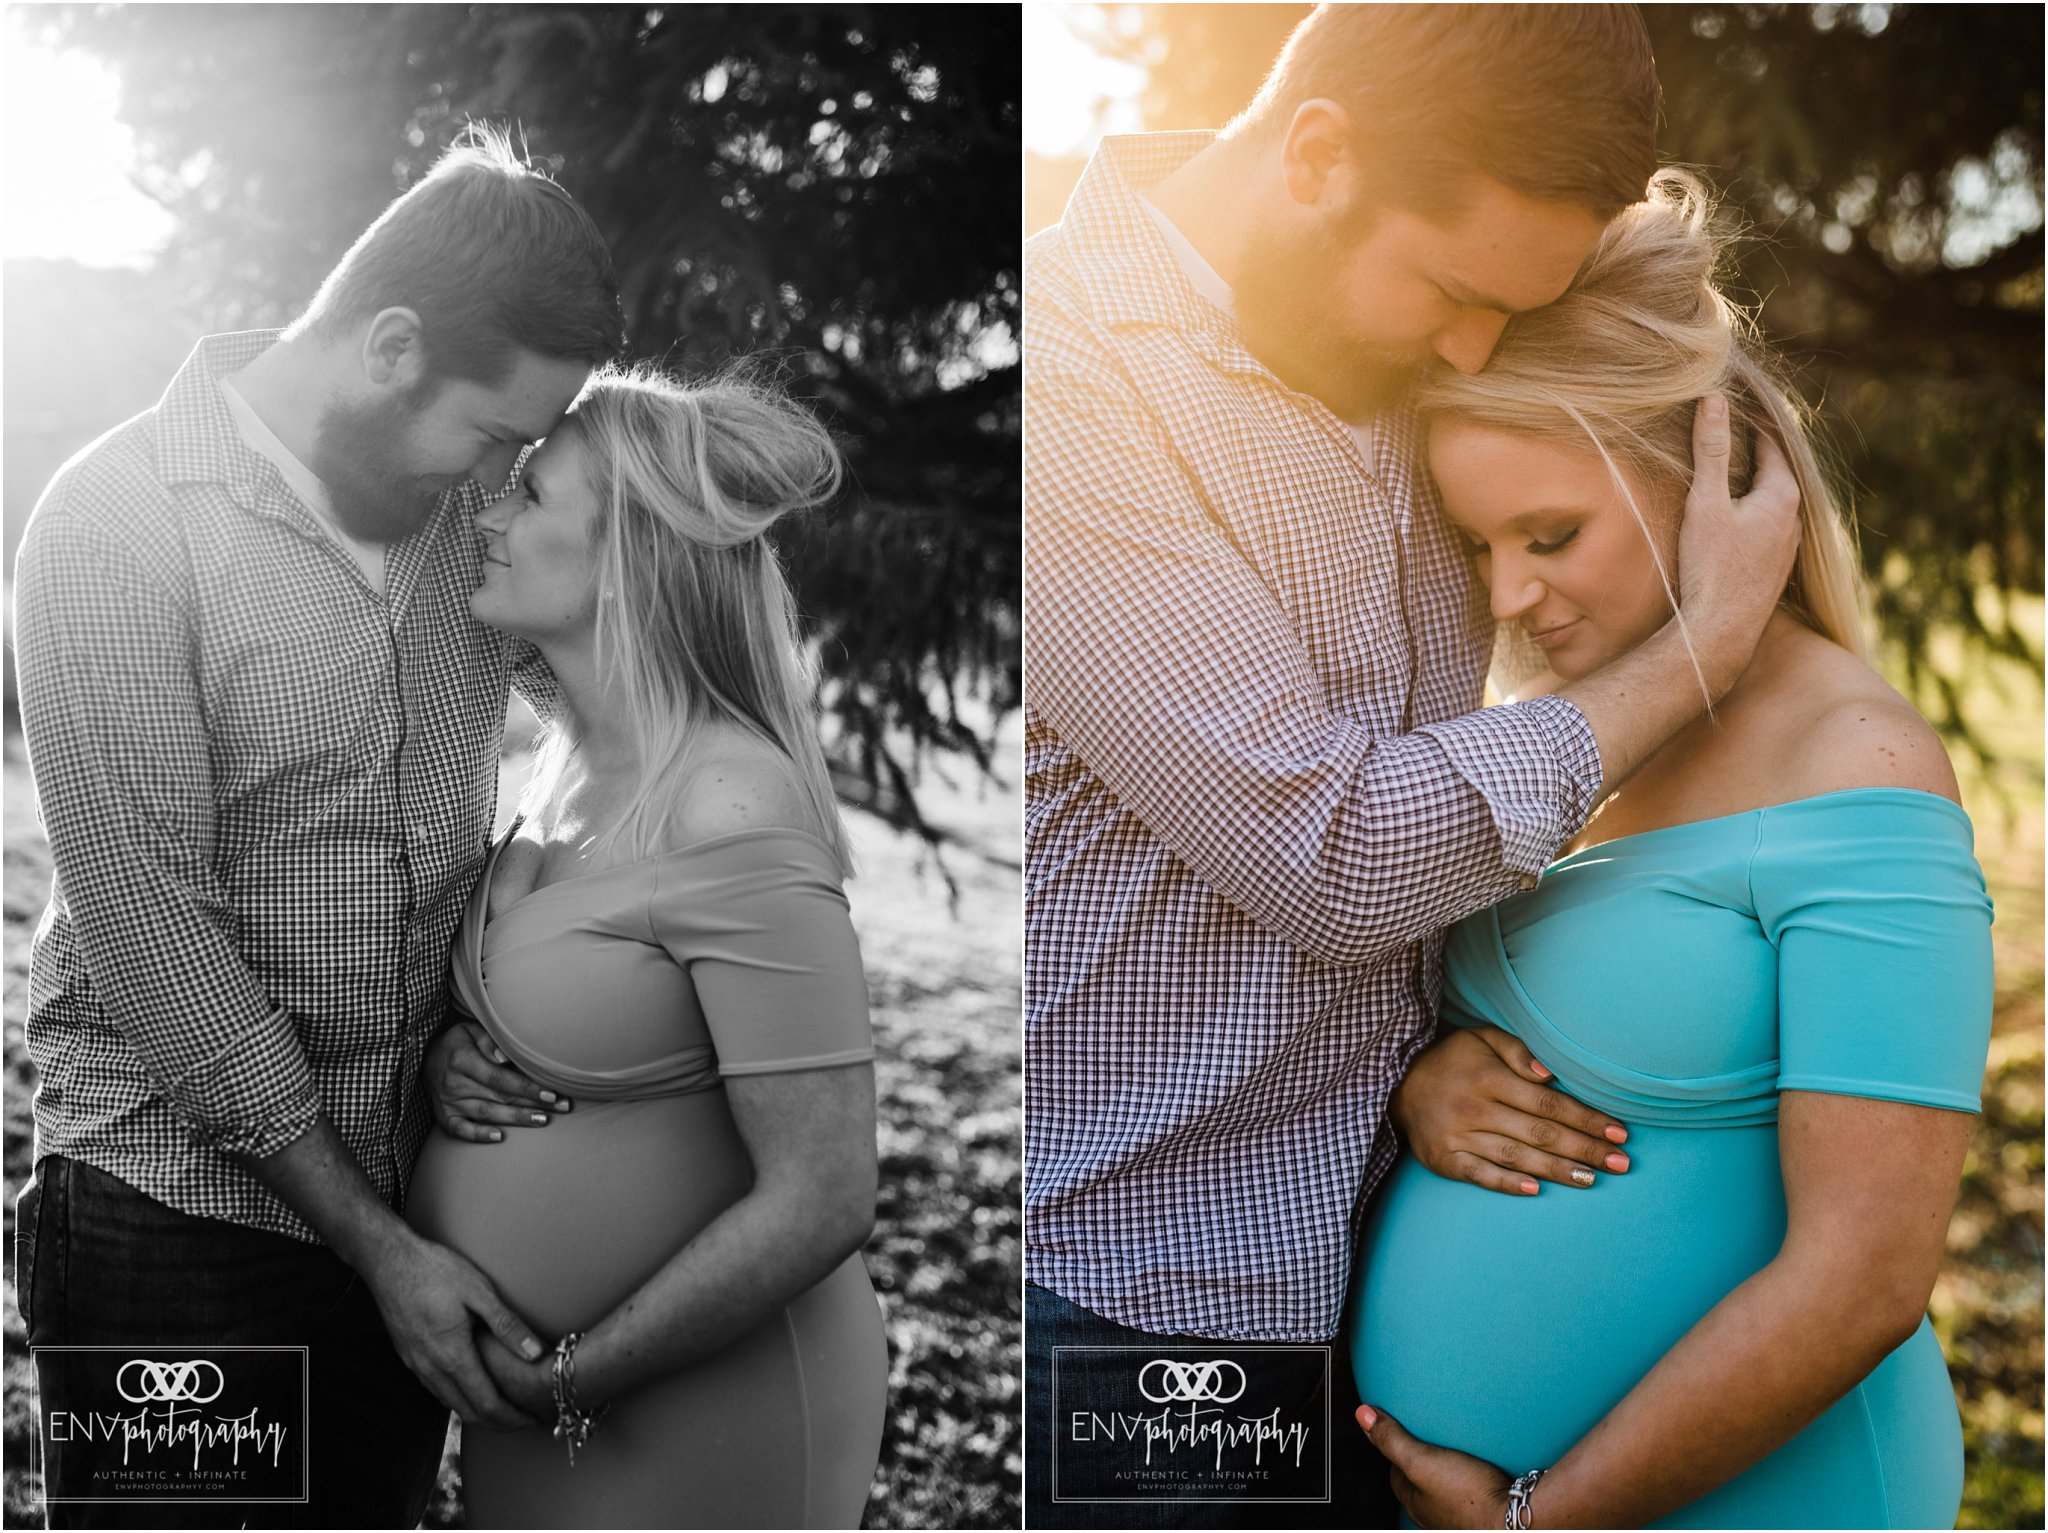 mount vernon columbus ohio maternity newborn photographer 42019 (11).jpg